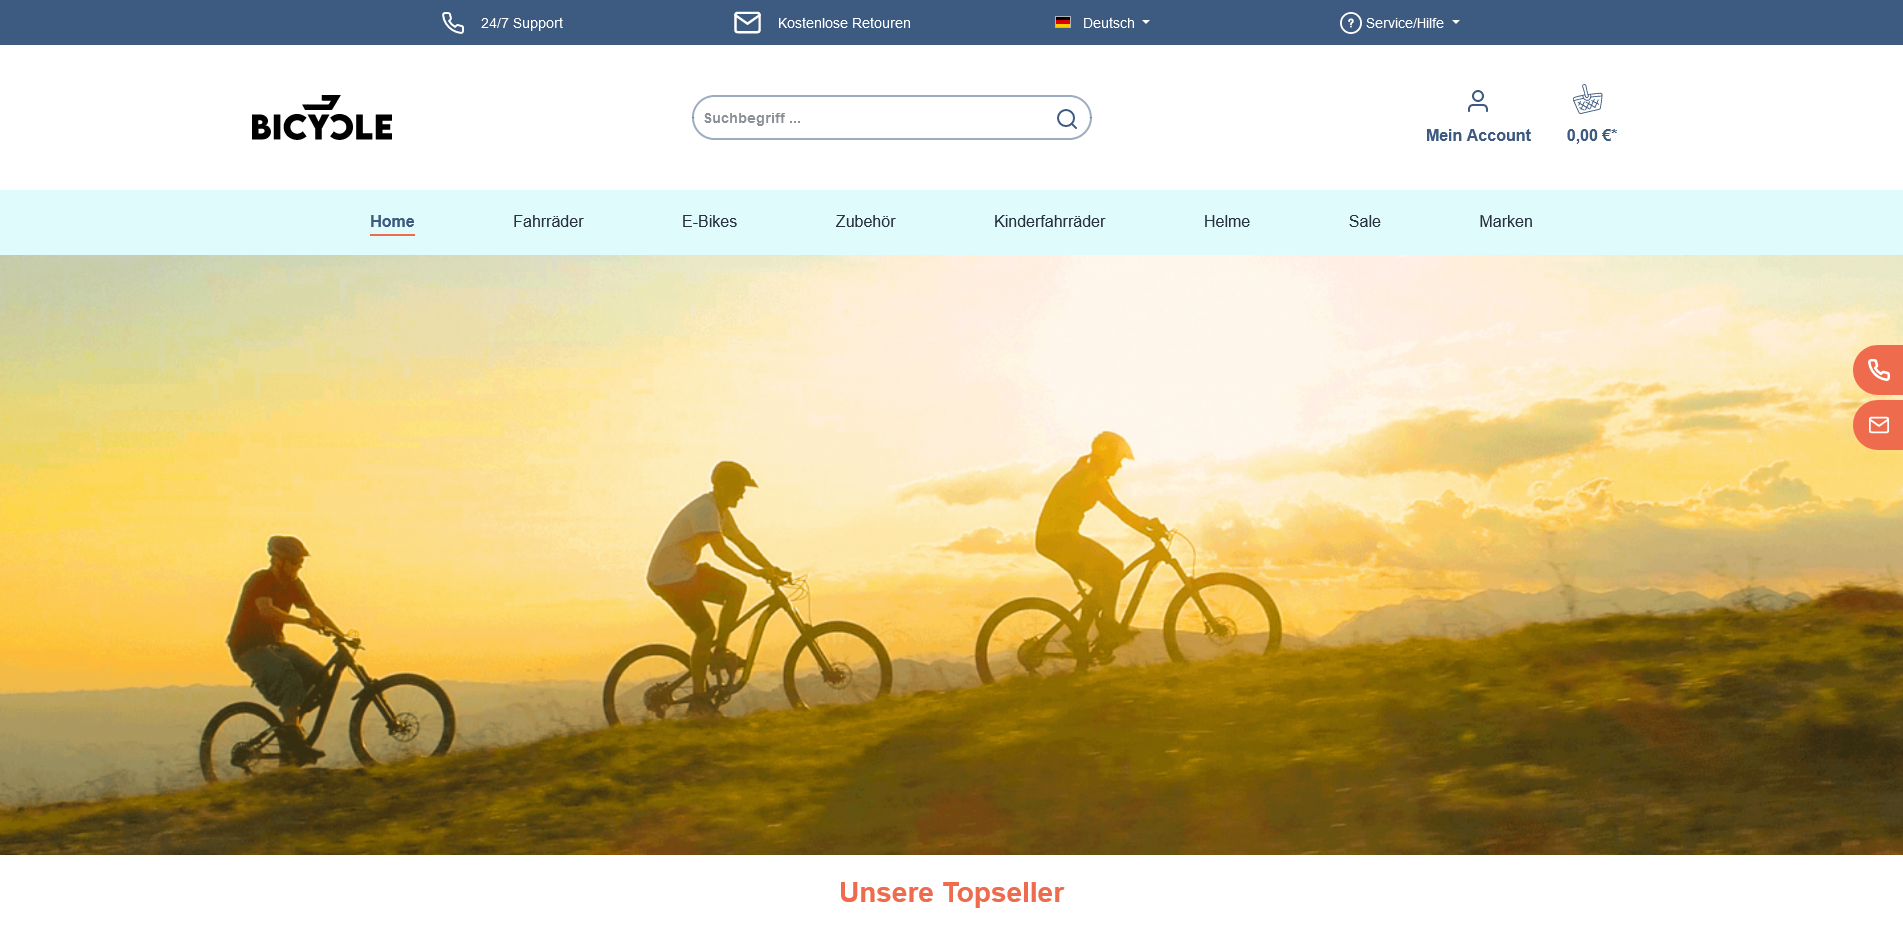 Outdoor Bicycle Theme   Extensively customizable   MEDIAHAUS